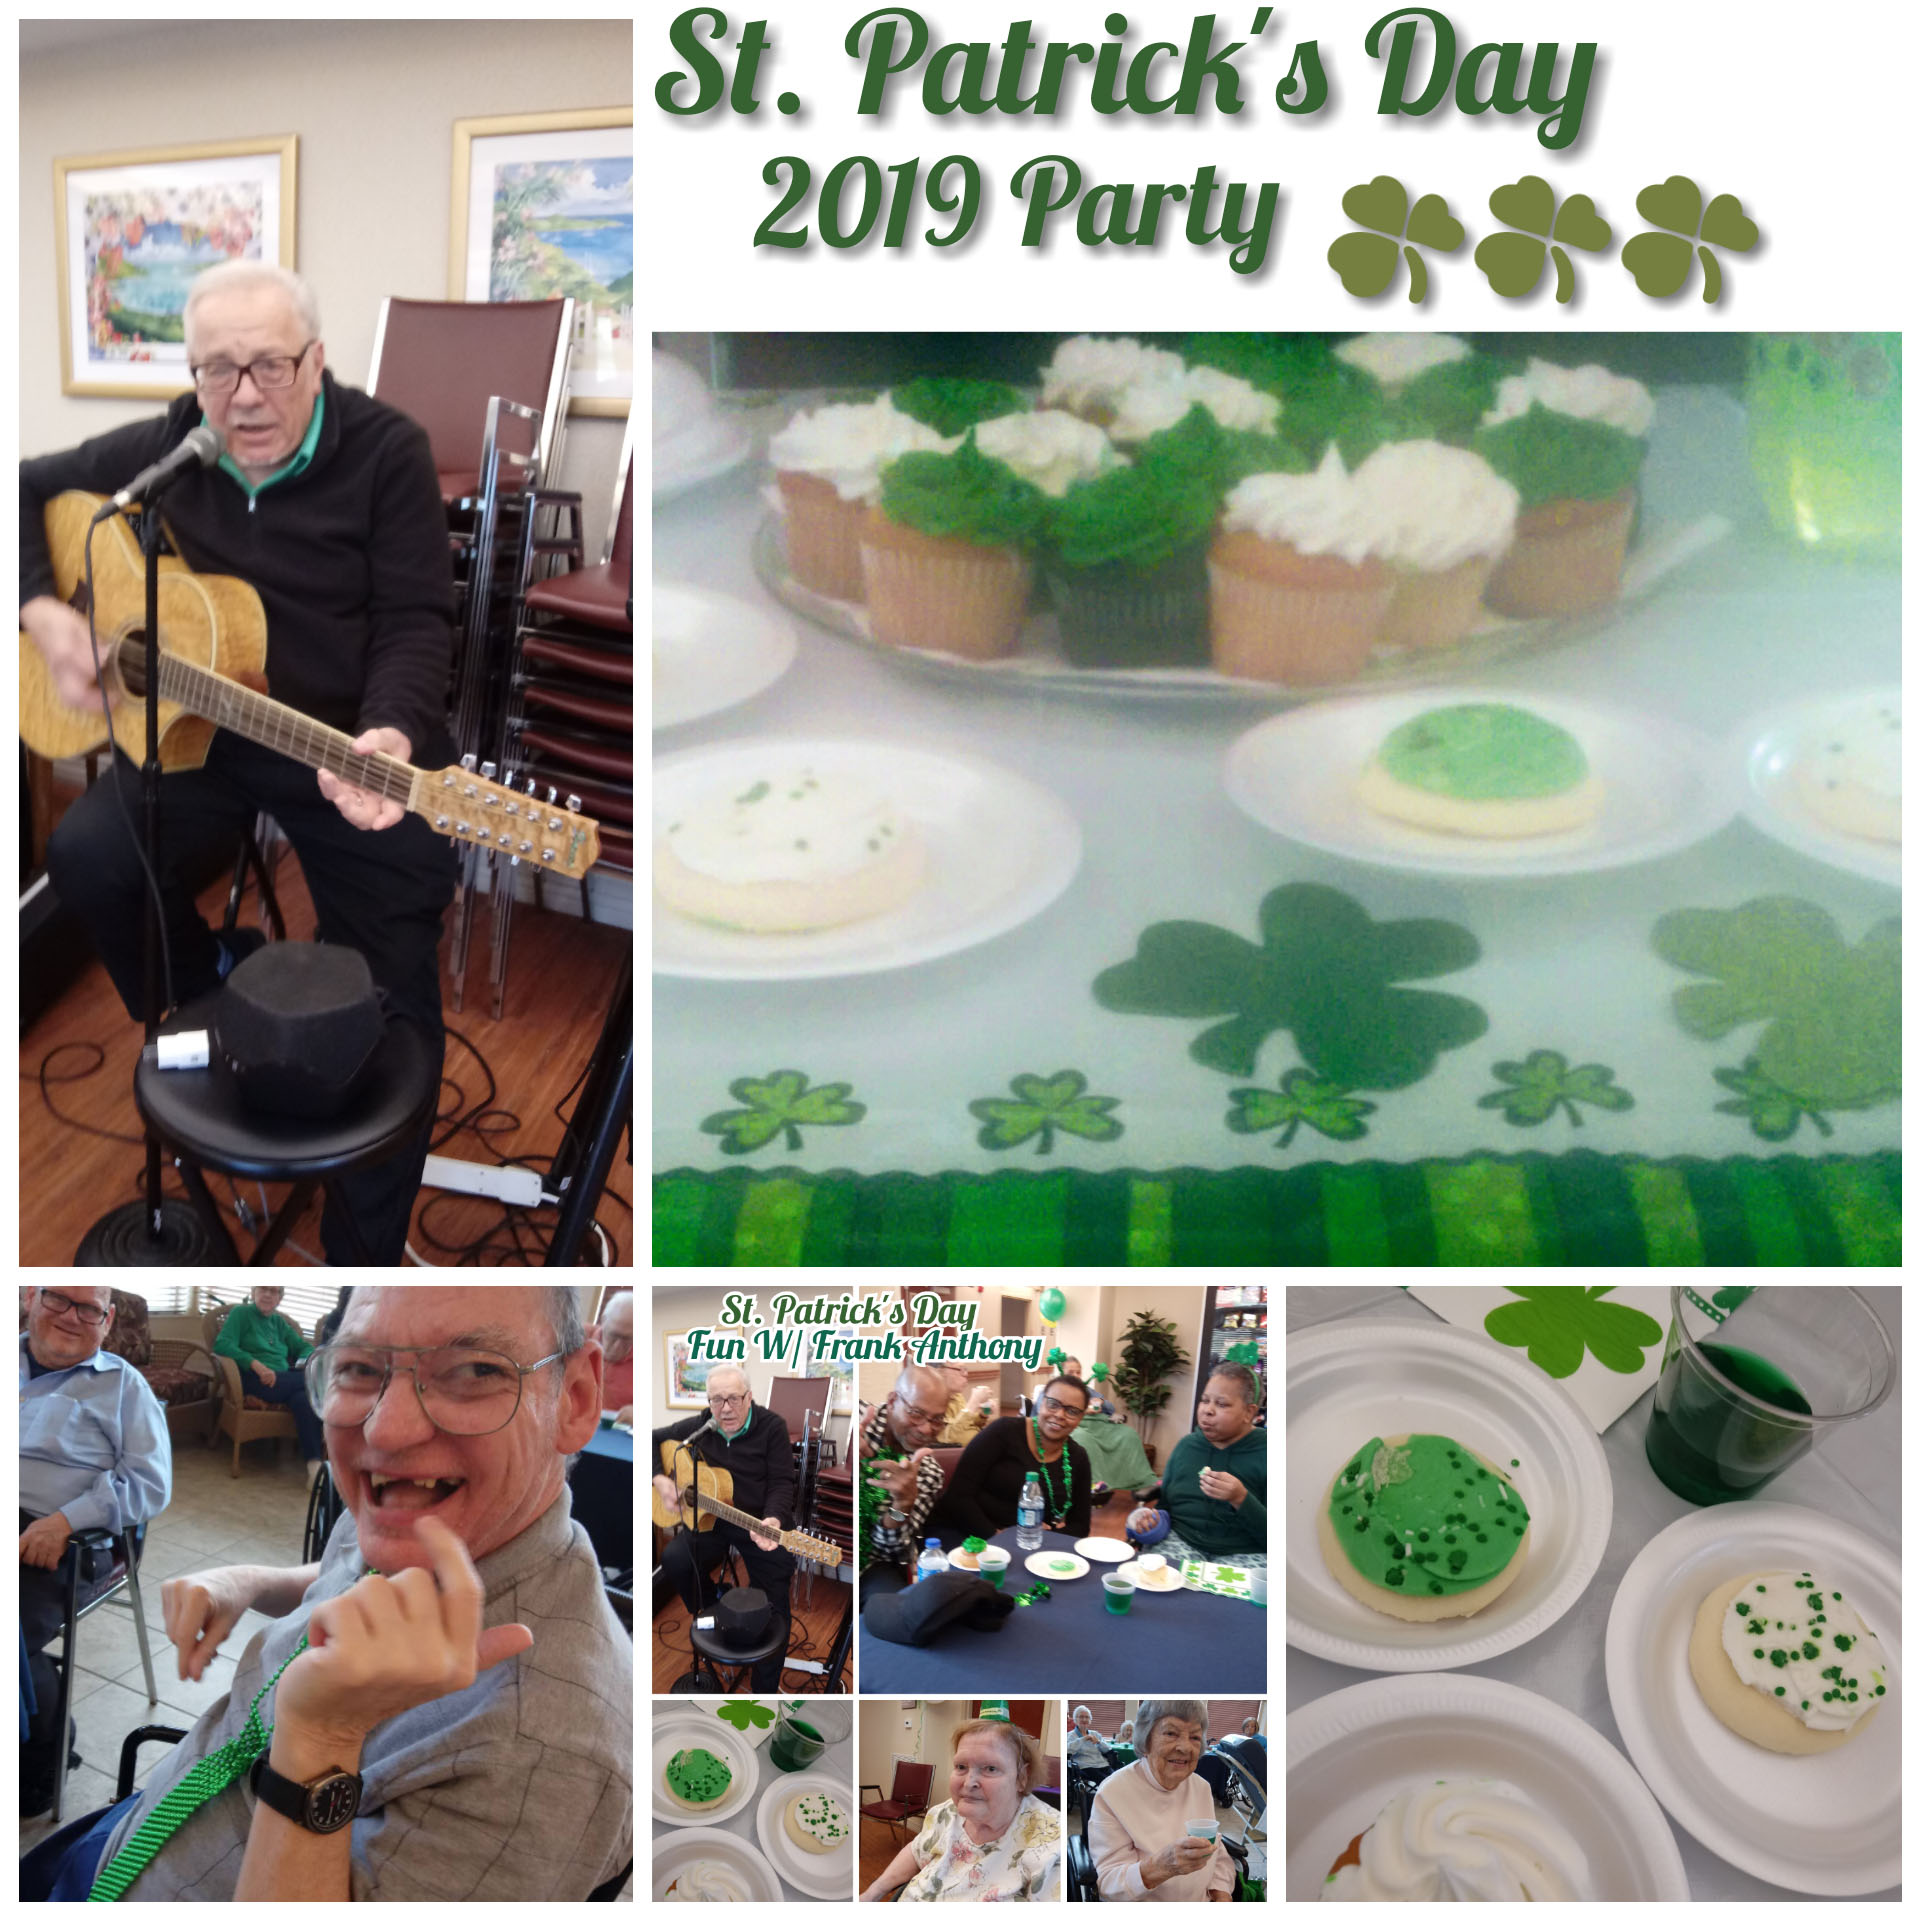 St. Patrick's Day with Frank Anthony